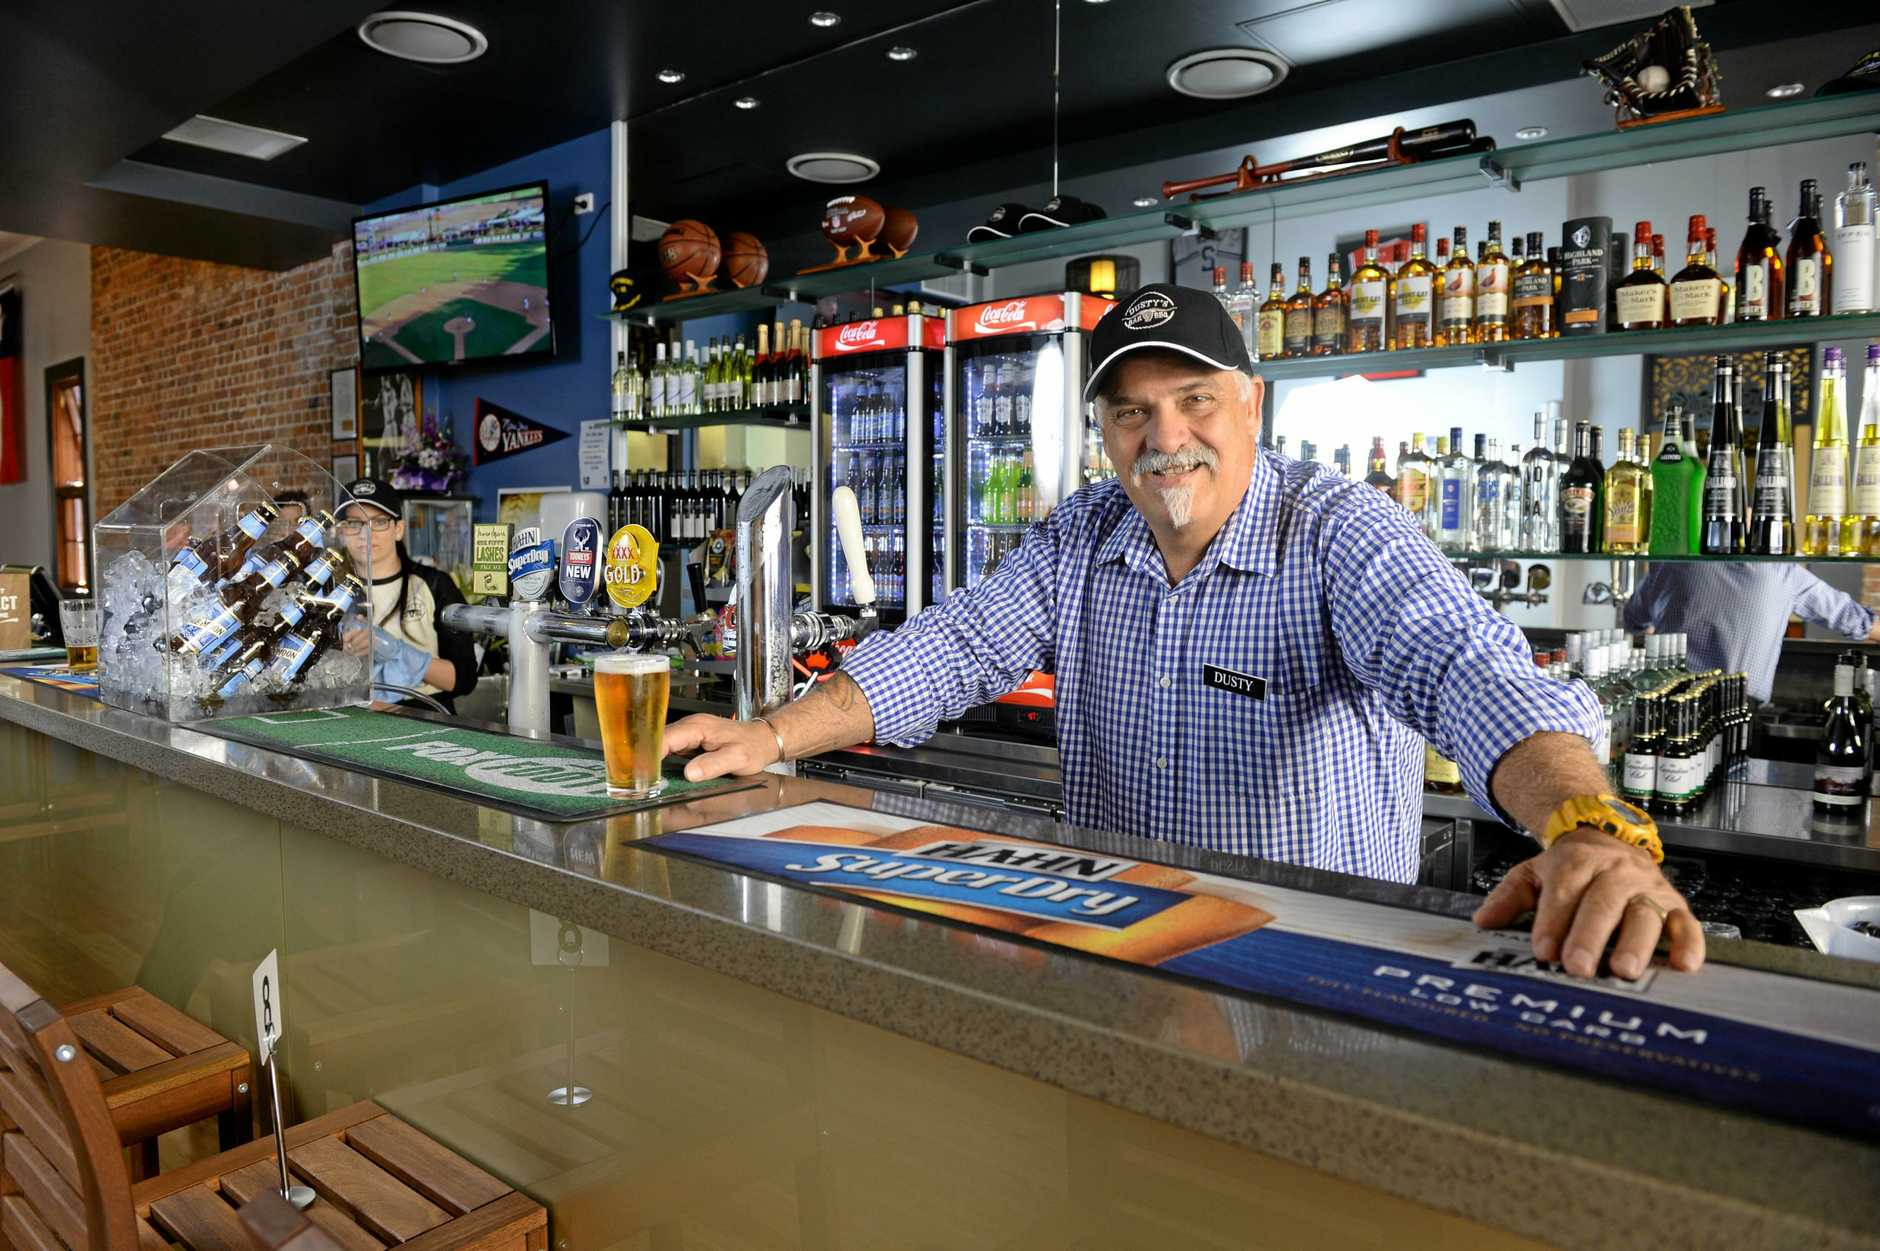 Dusty's Bar and BBQ owner Mark Dale. Photo: Rob Williams / The Queensland Times